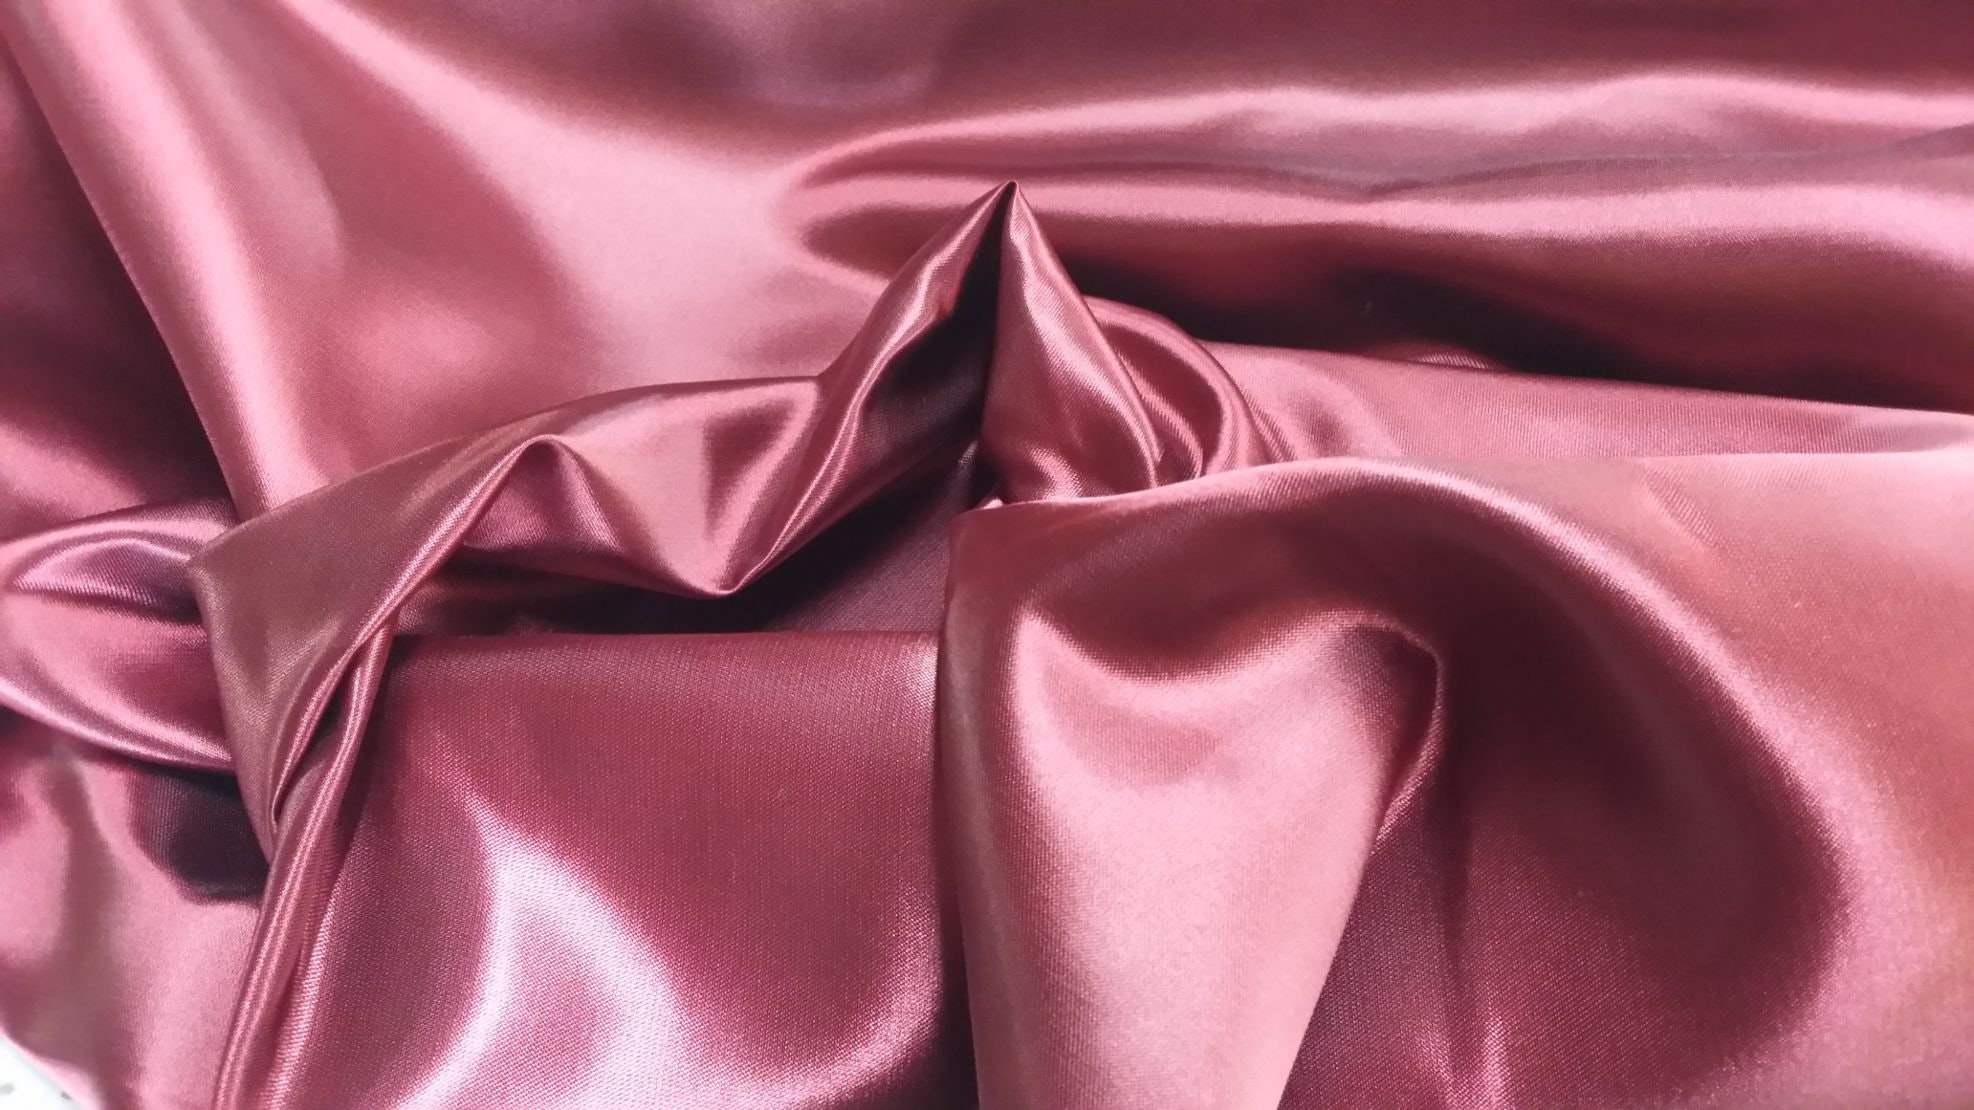 2016_08_2014_FEB_BURGUNDY_SATIN_3.jpg